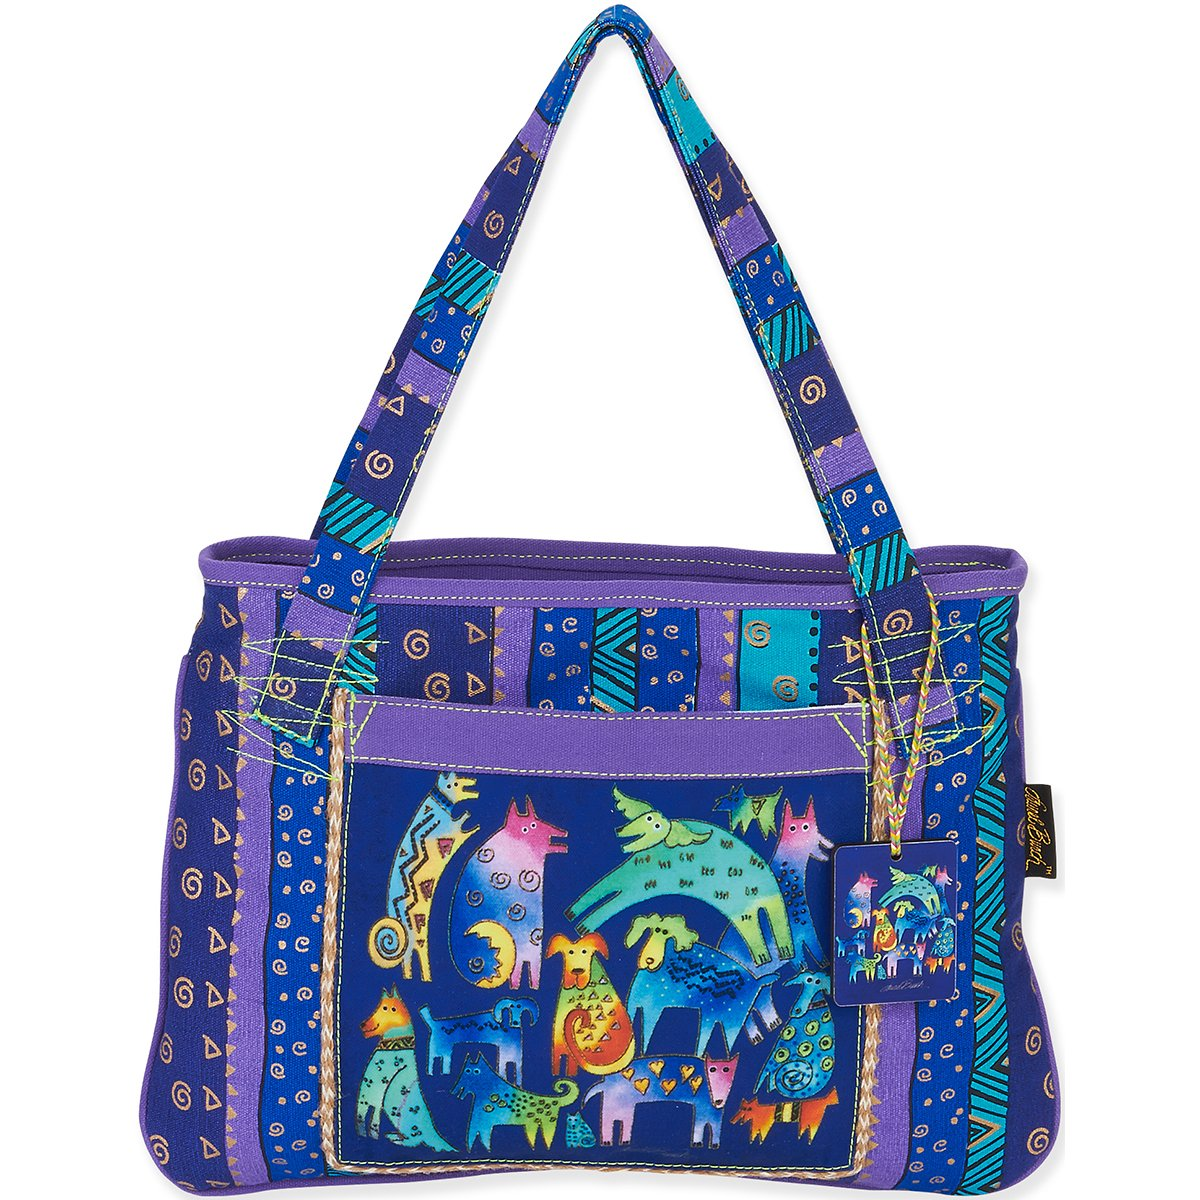 Laurel Burch Medium Tote, 15 by 11-Inch, Mythical Dogs LB5391